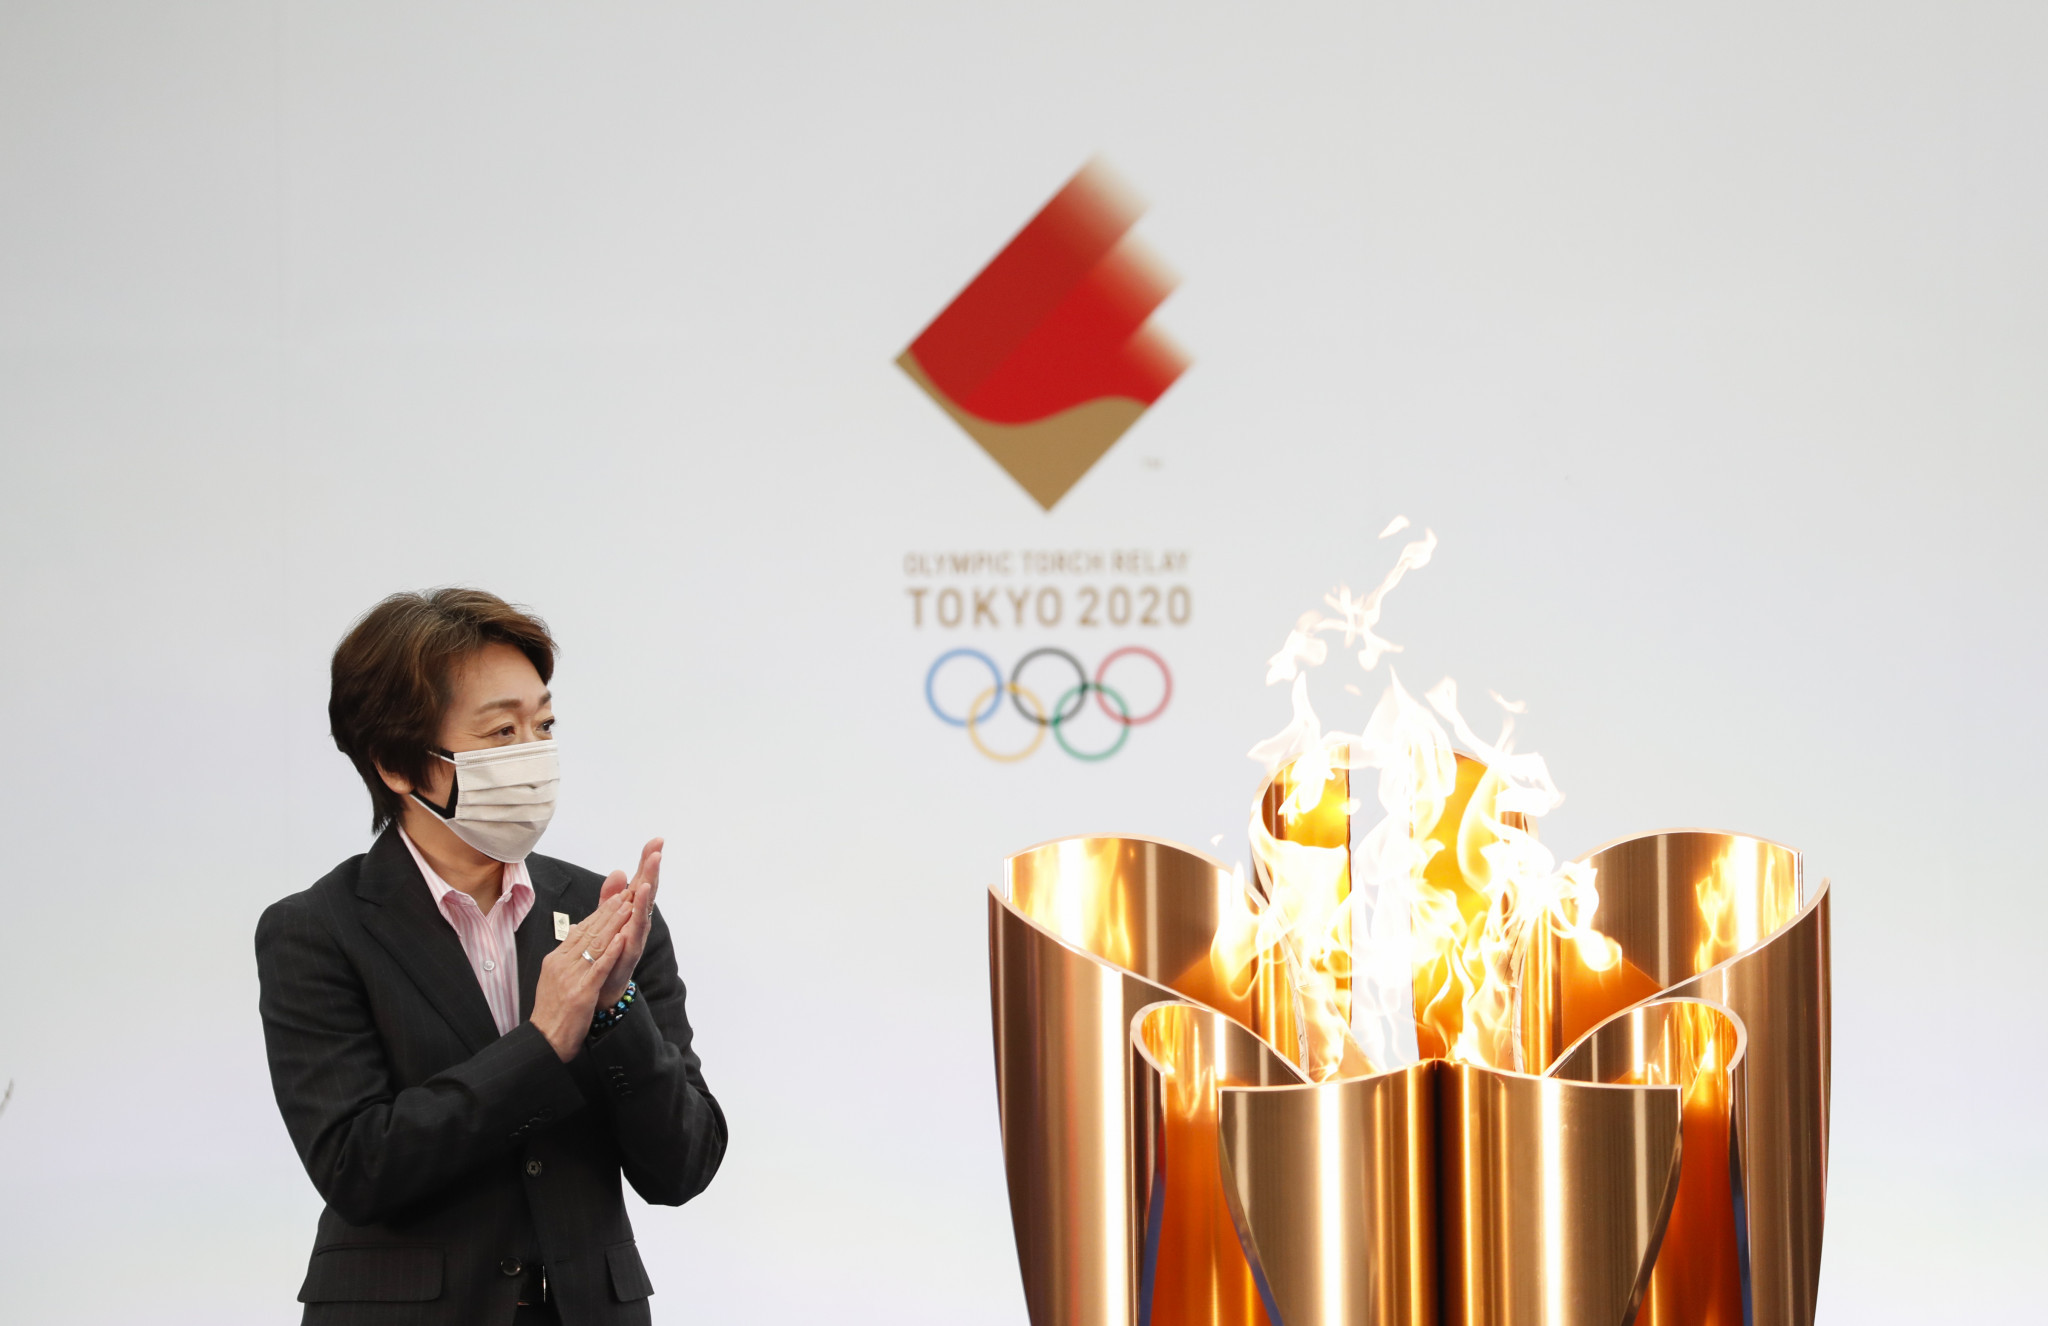 Tokyo 2020 President Seiko Hashimoto has yet to make a decision on whether to cancel the Osaka leg of the Olympic Torch Relay after new coronavirus restrictions were introduced in the city ©Getty Images